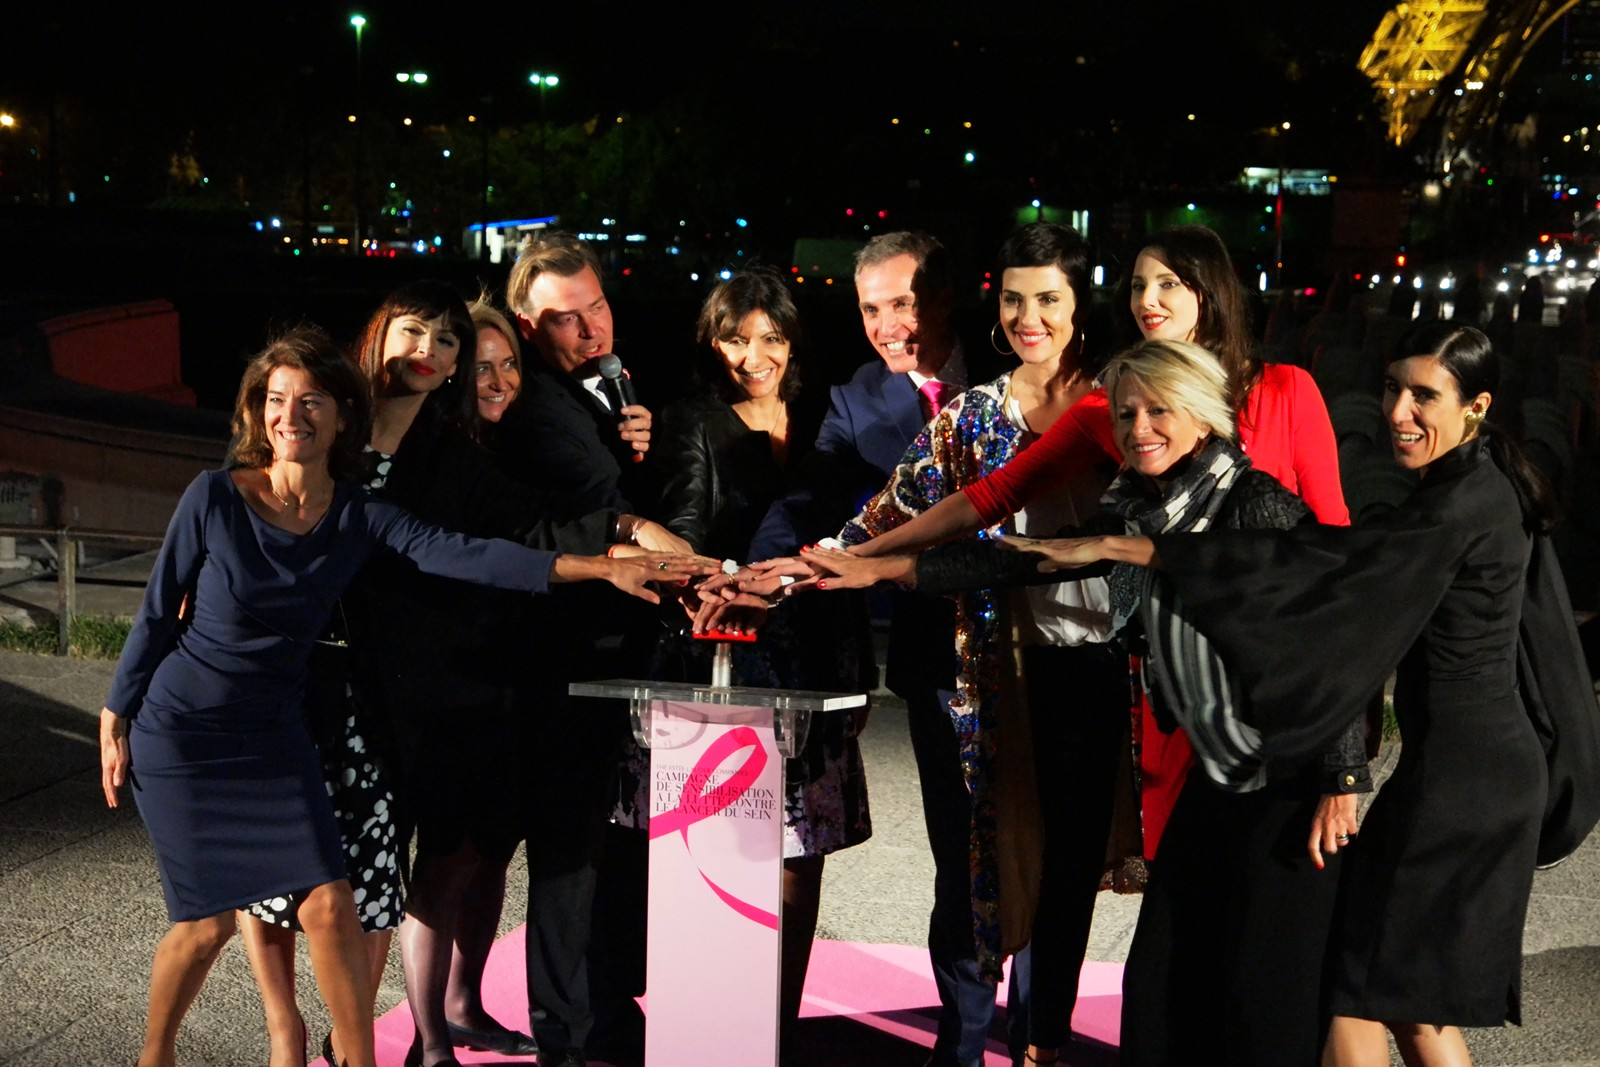 Marielle Fournier Mathilda May Anne Hidalgo Cristina Cordula Sophie Davant Frédérique Bel Blanca Li illumination tour eiffel Octobre Rose 2015 cancer du sein parlons-en photo usofparis blog